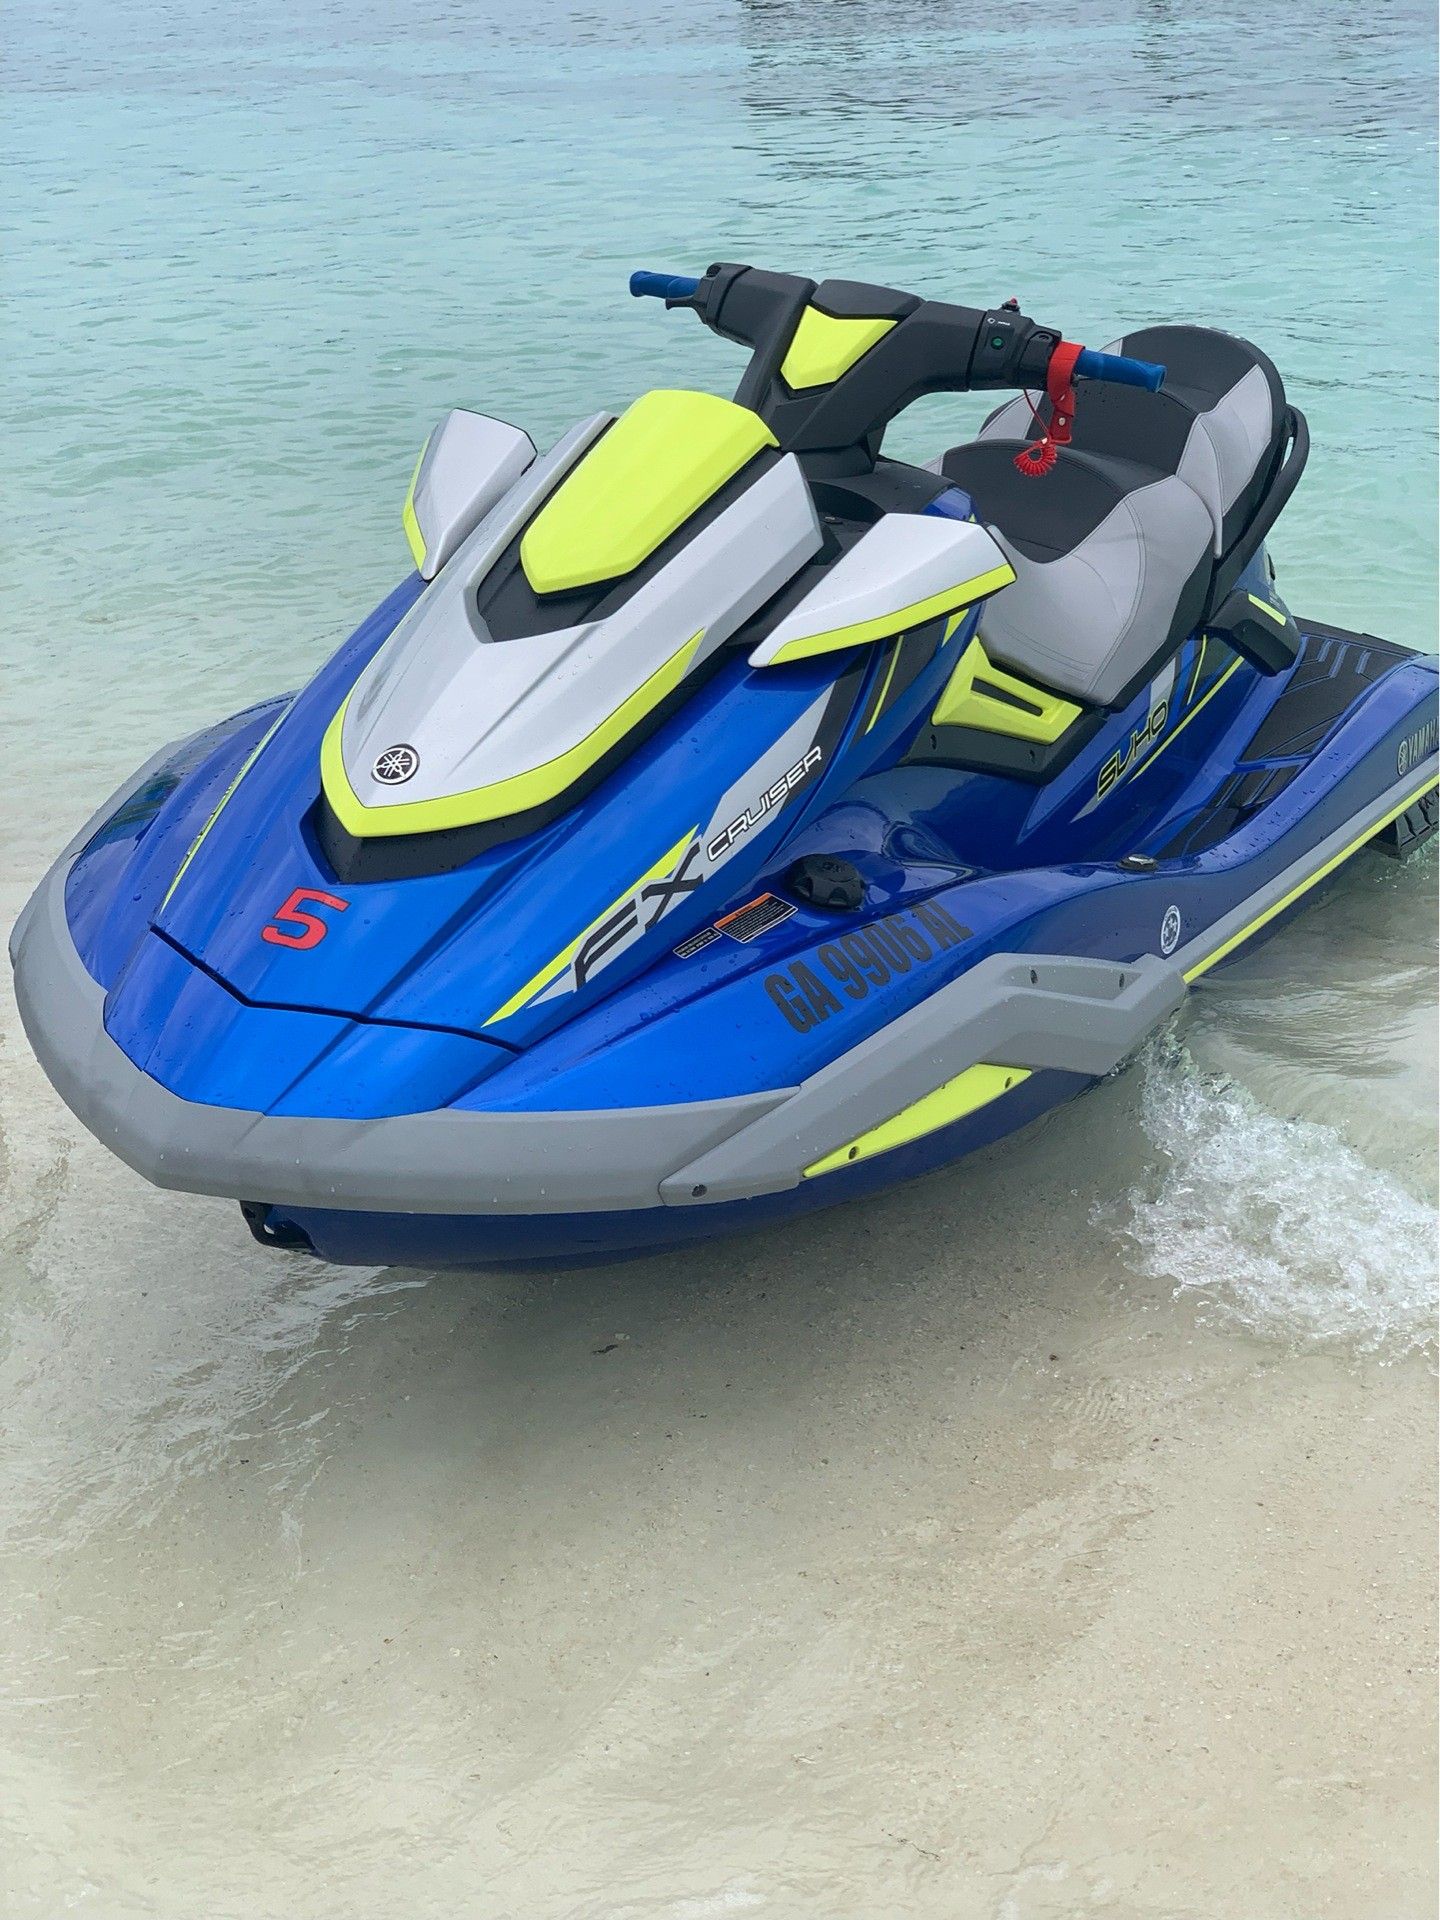 2020 Yamaha FX Cruiser SVHO in Orlando, Florida - Photo 1